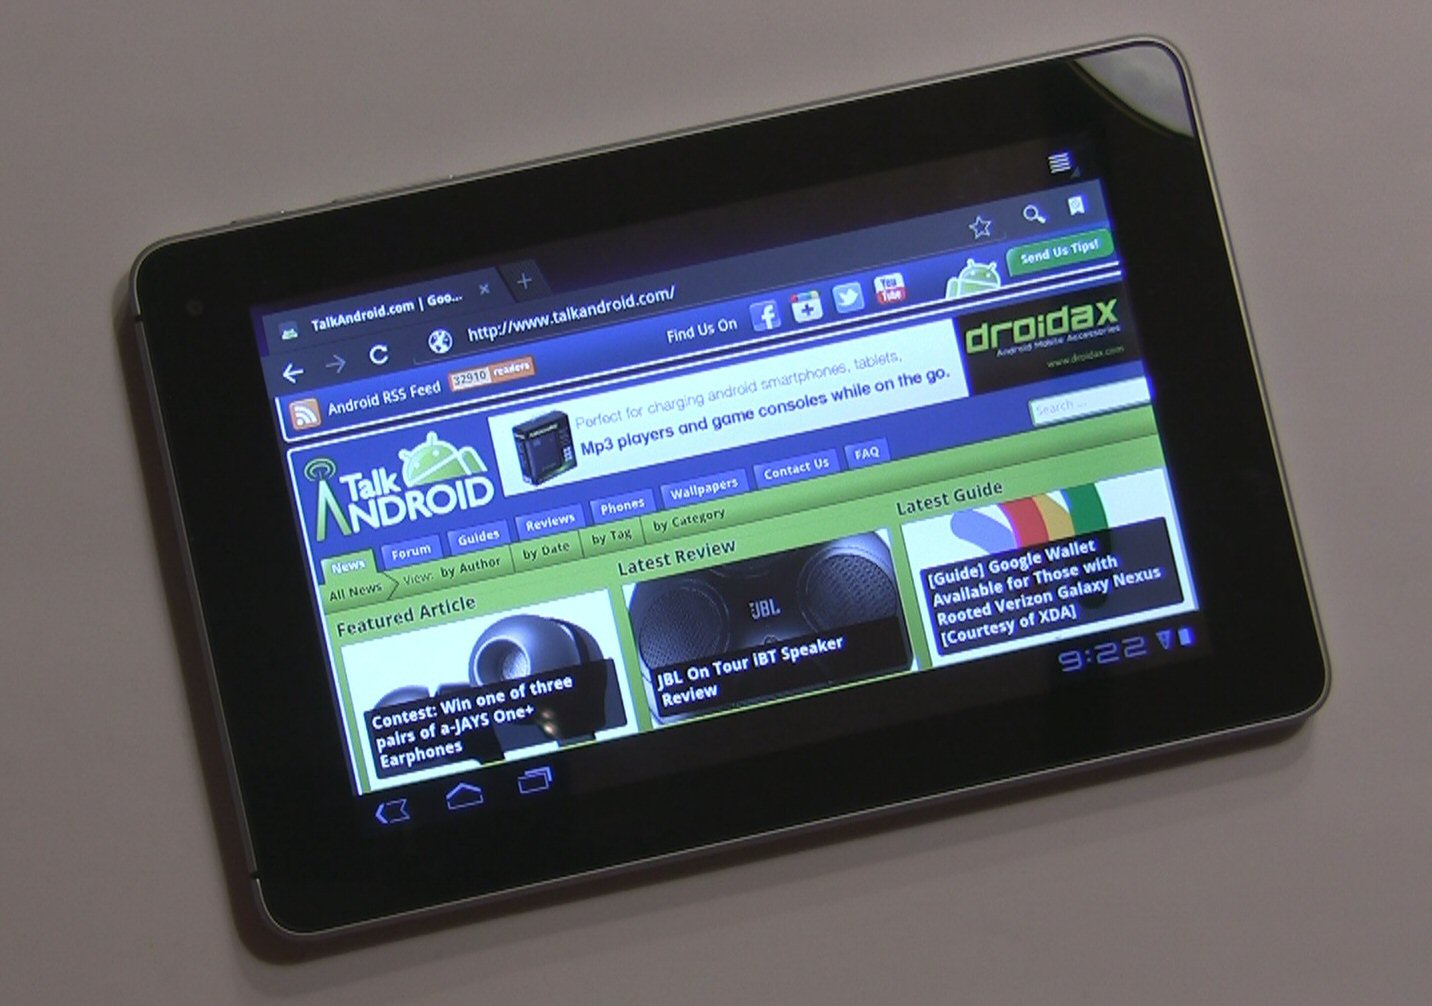 Samsung Galaxy Note Edition 4G LTE Tablet, Black Inch 32GB (T-Mobile).